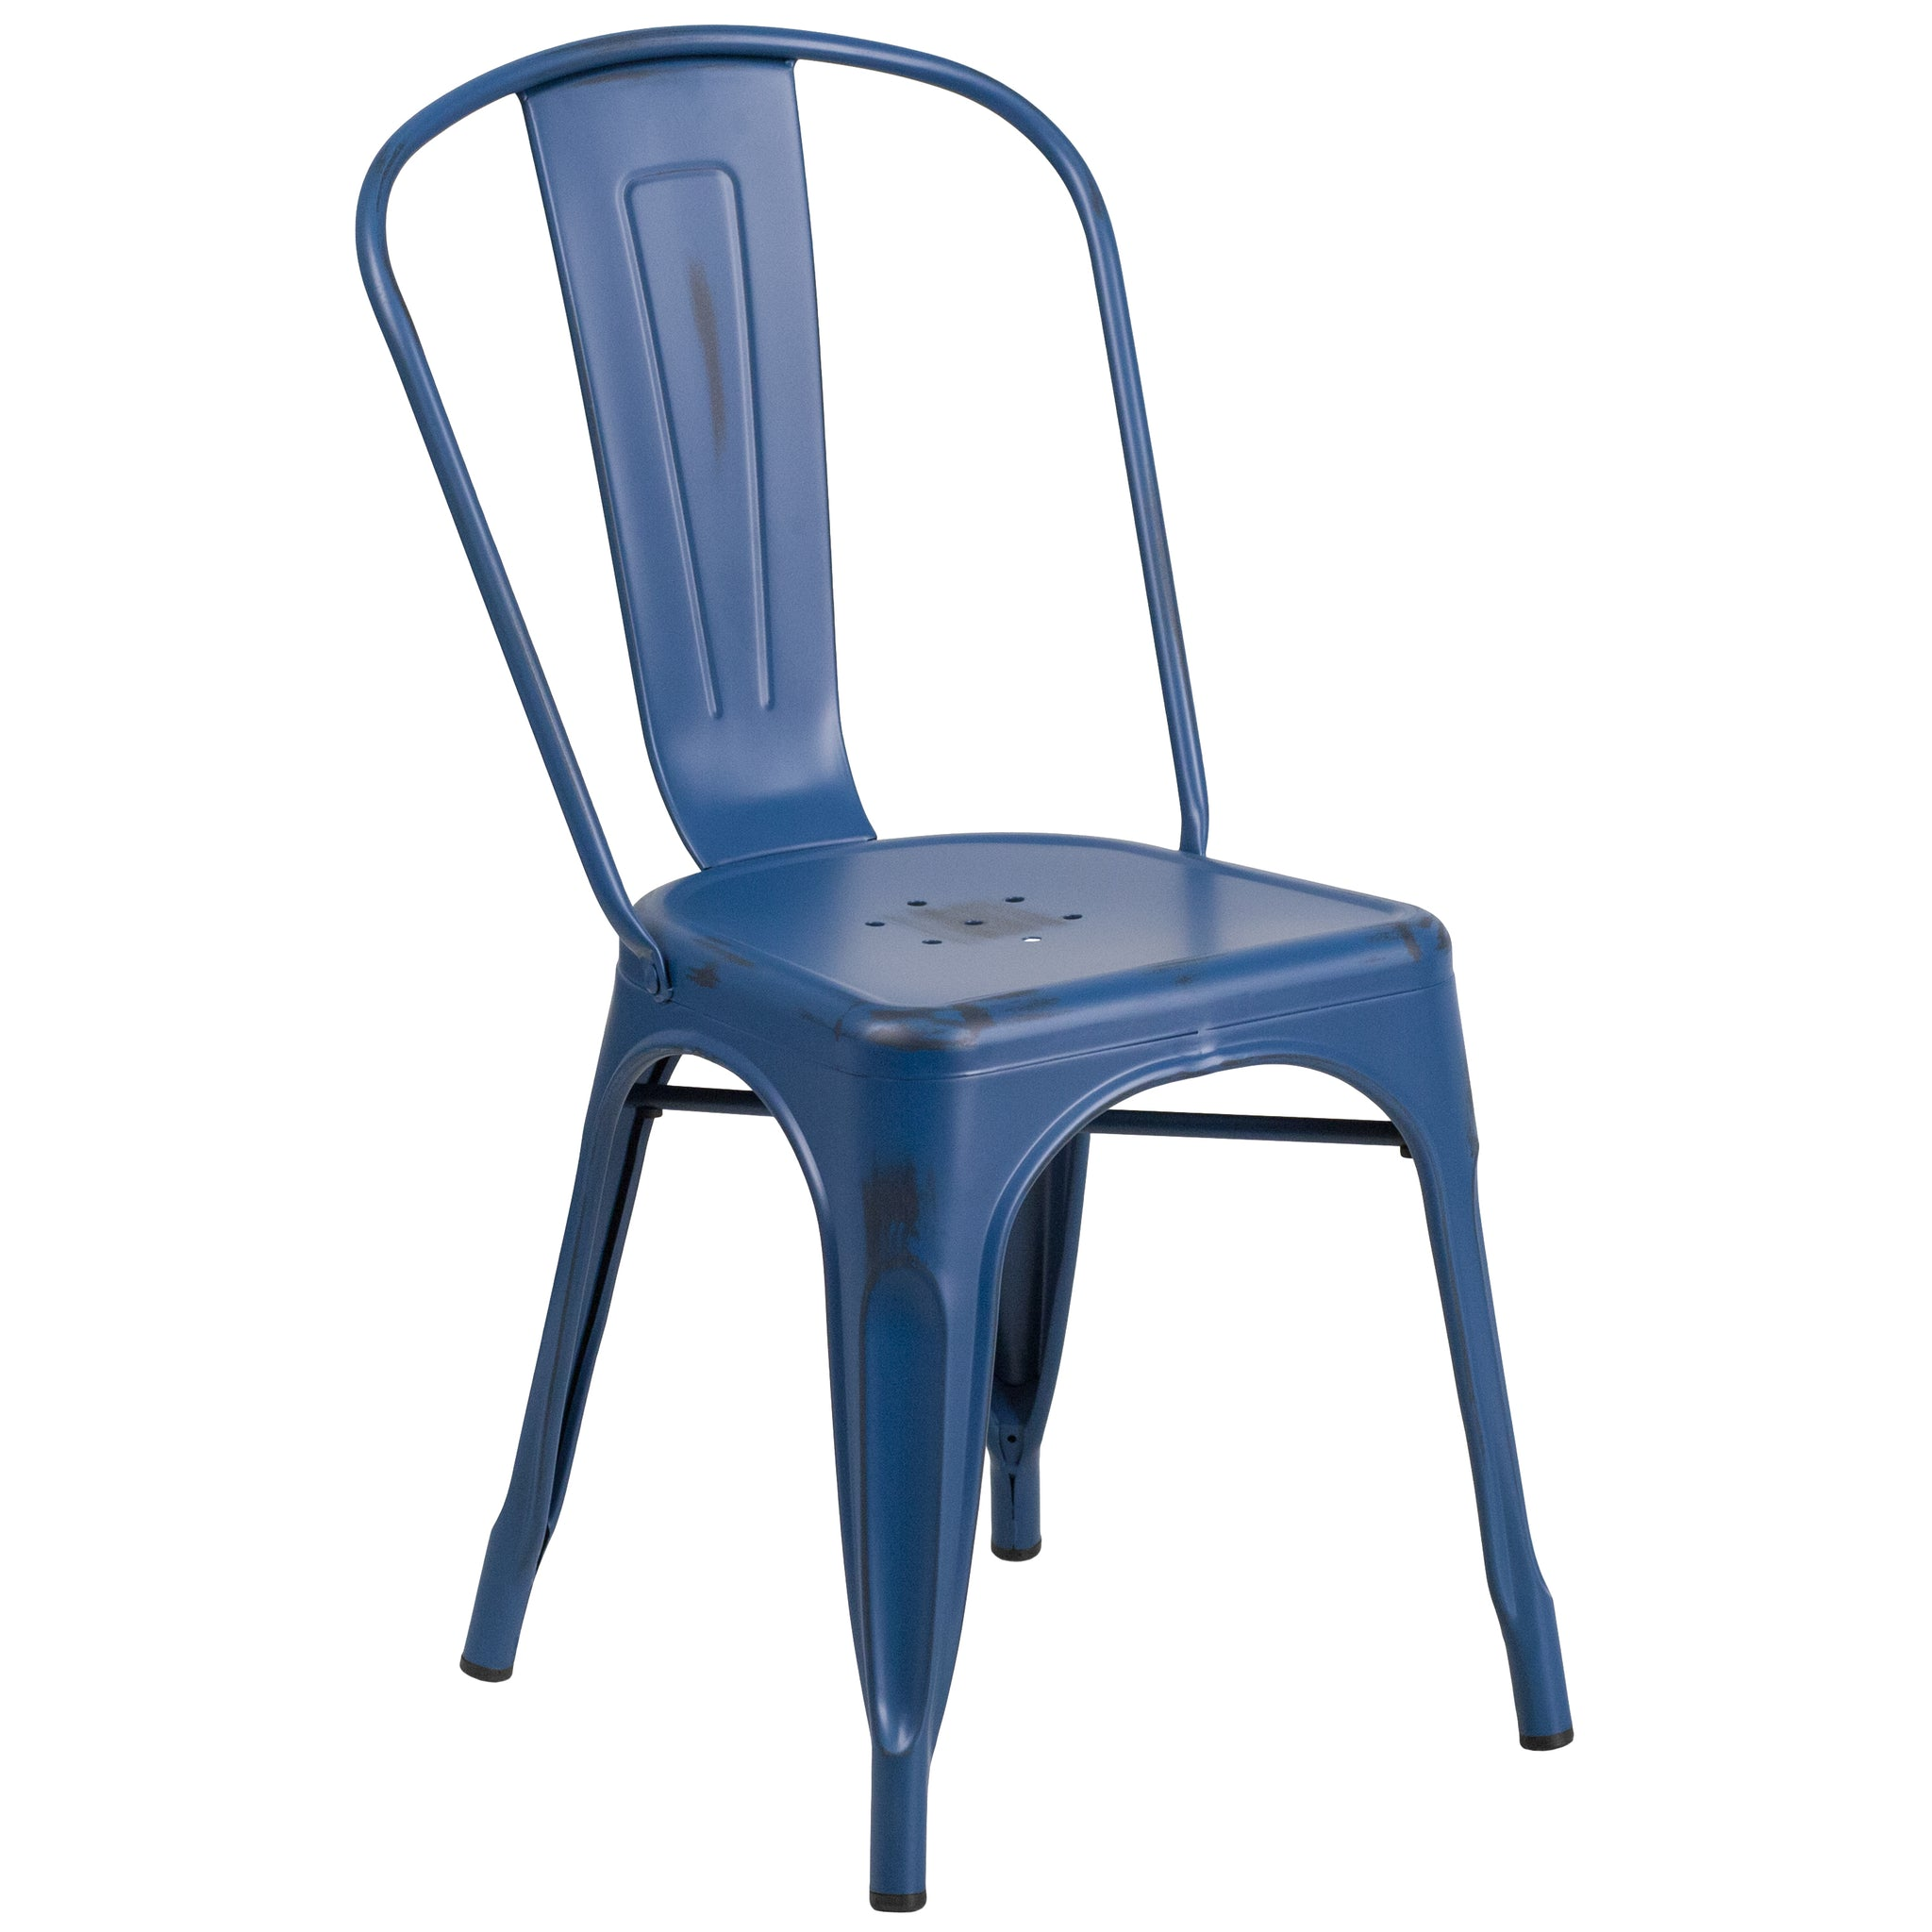 Distressed Metal Indoor-Outdoor Stackable Chair: Antique Blue